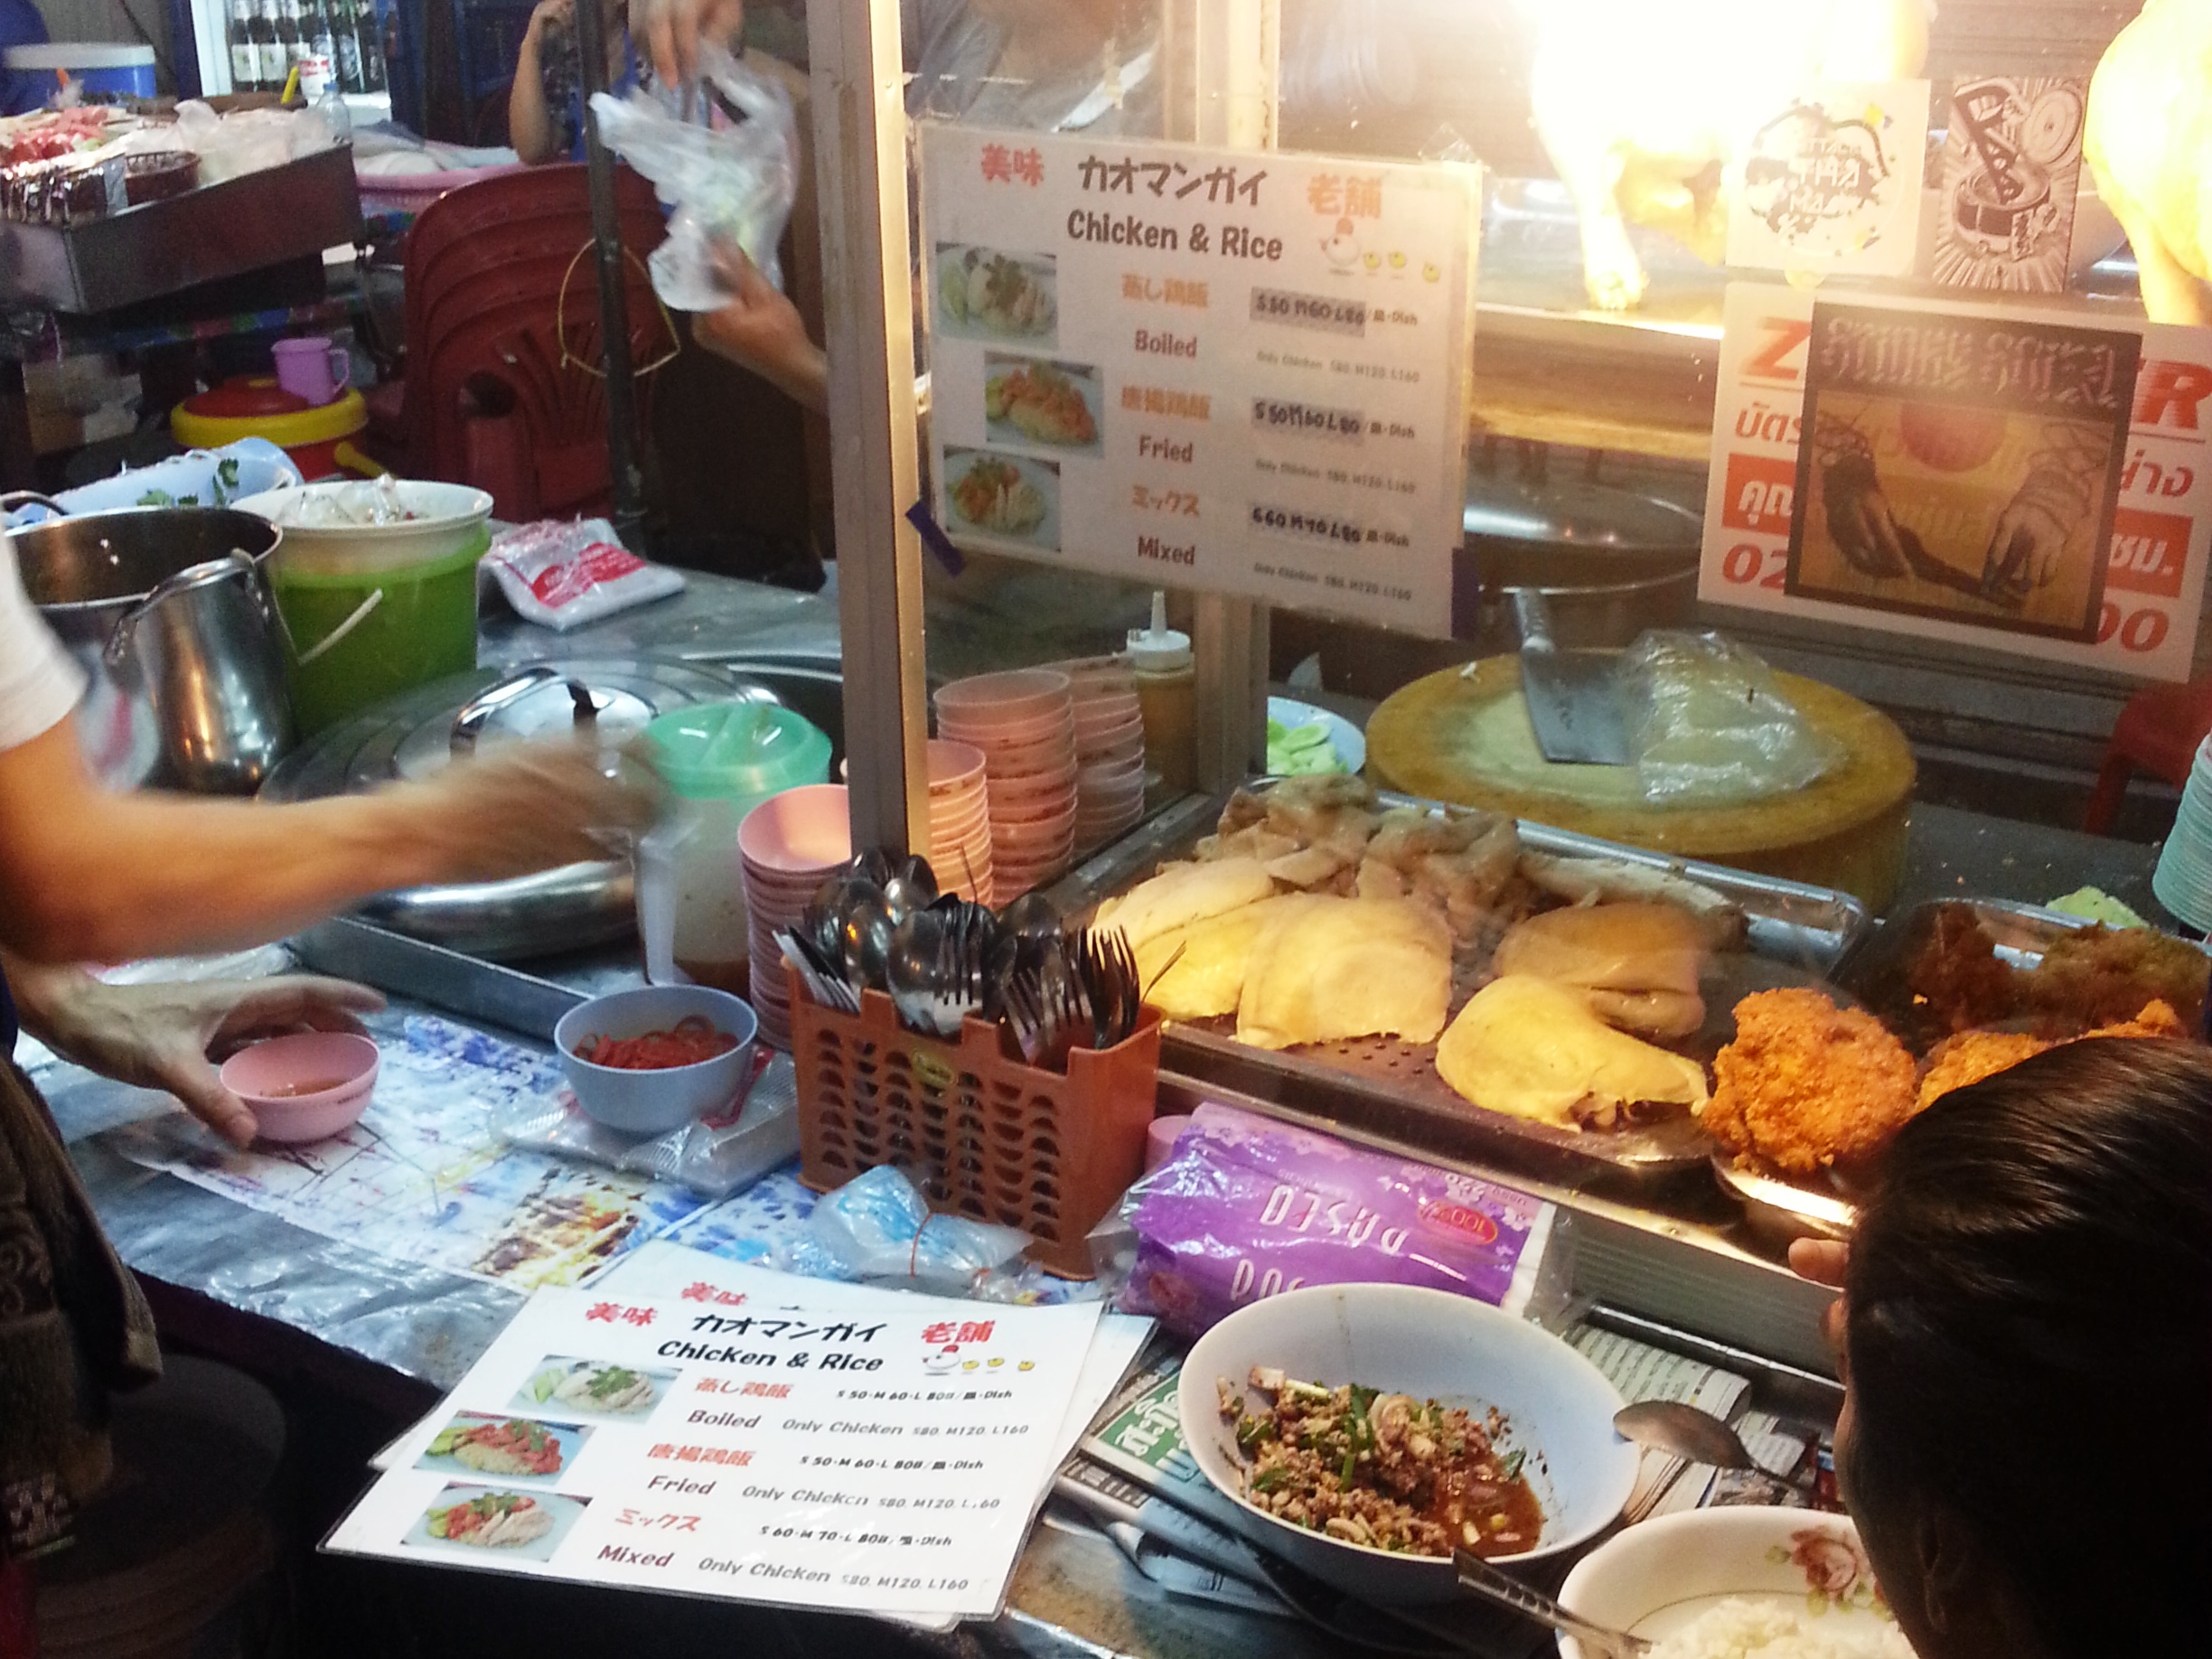 Bangkok street food - chicken rice stand